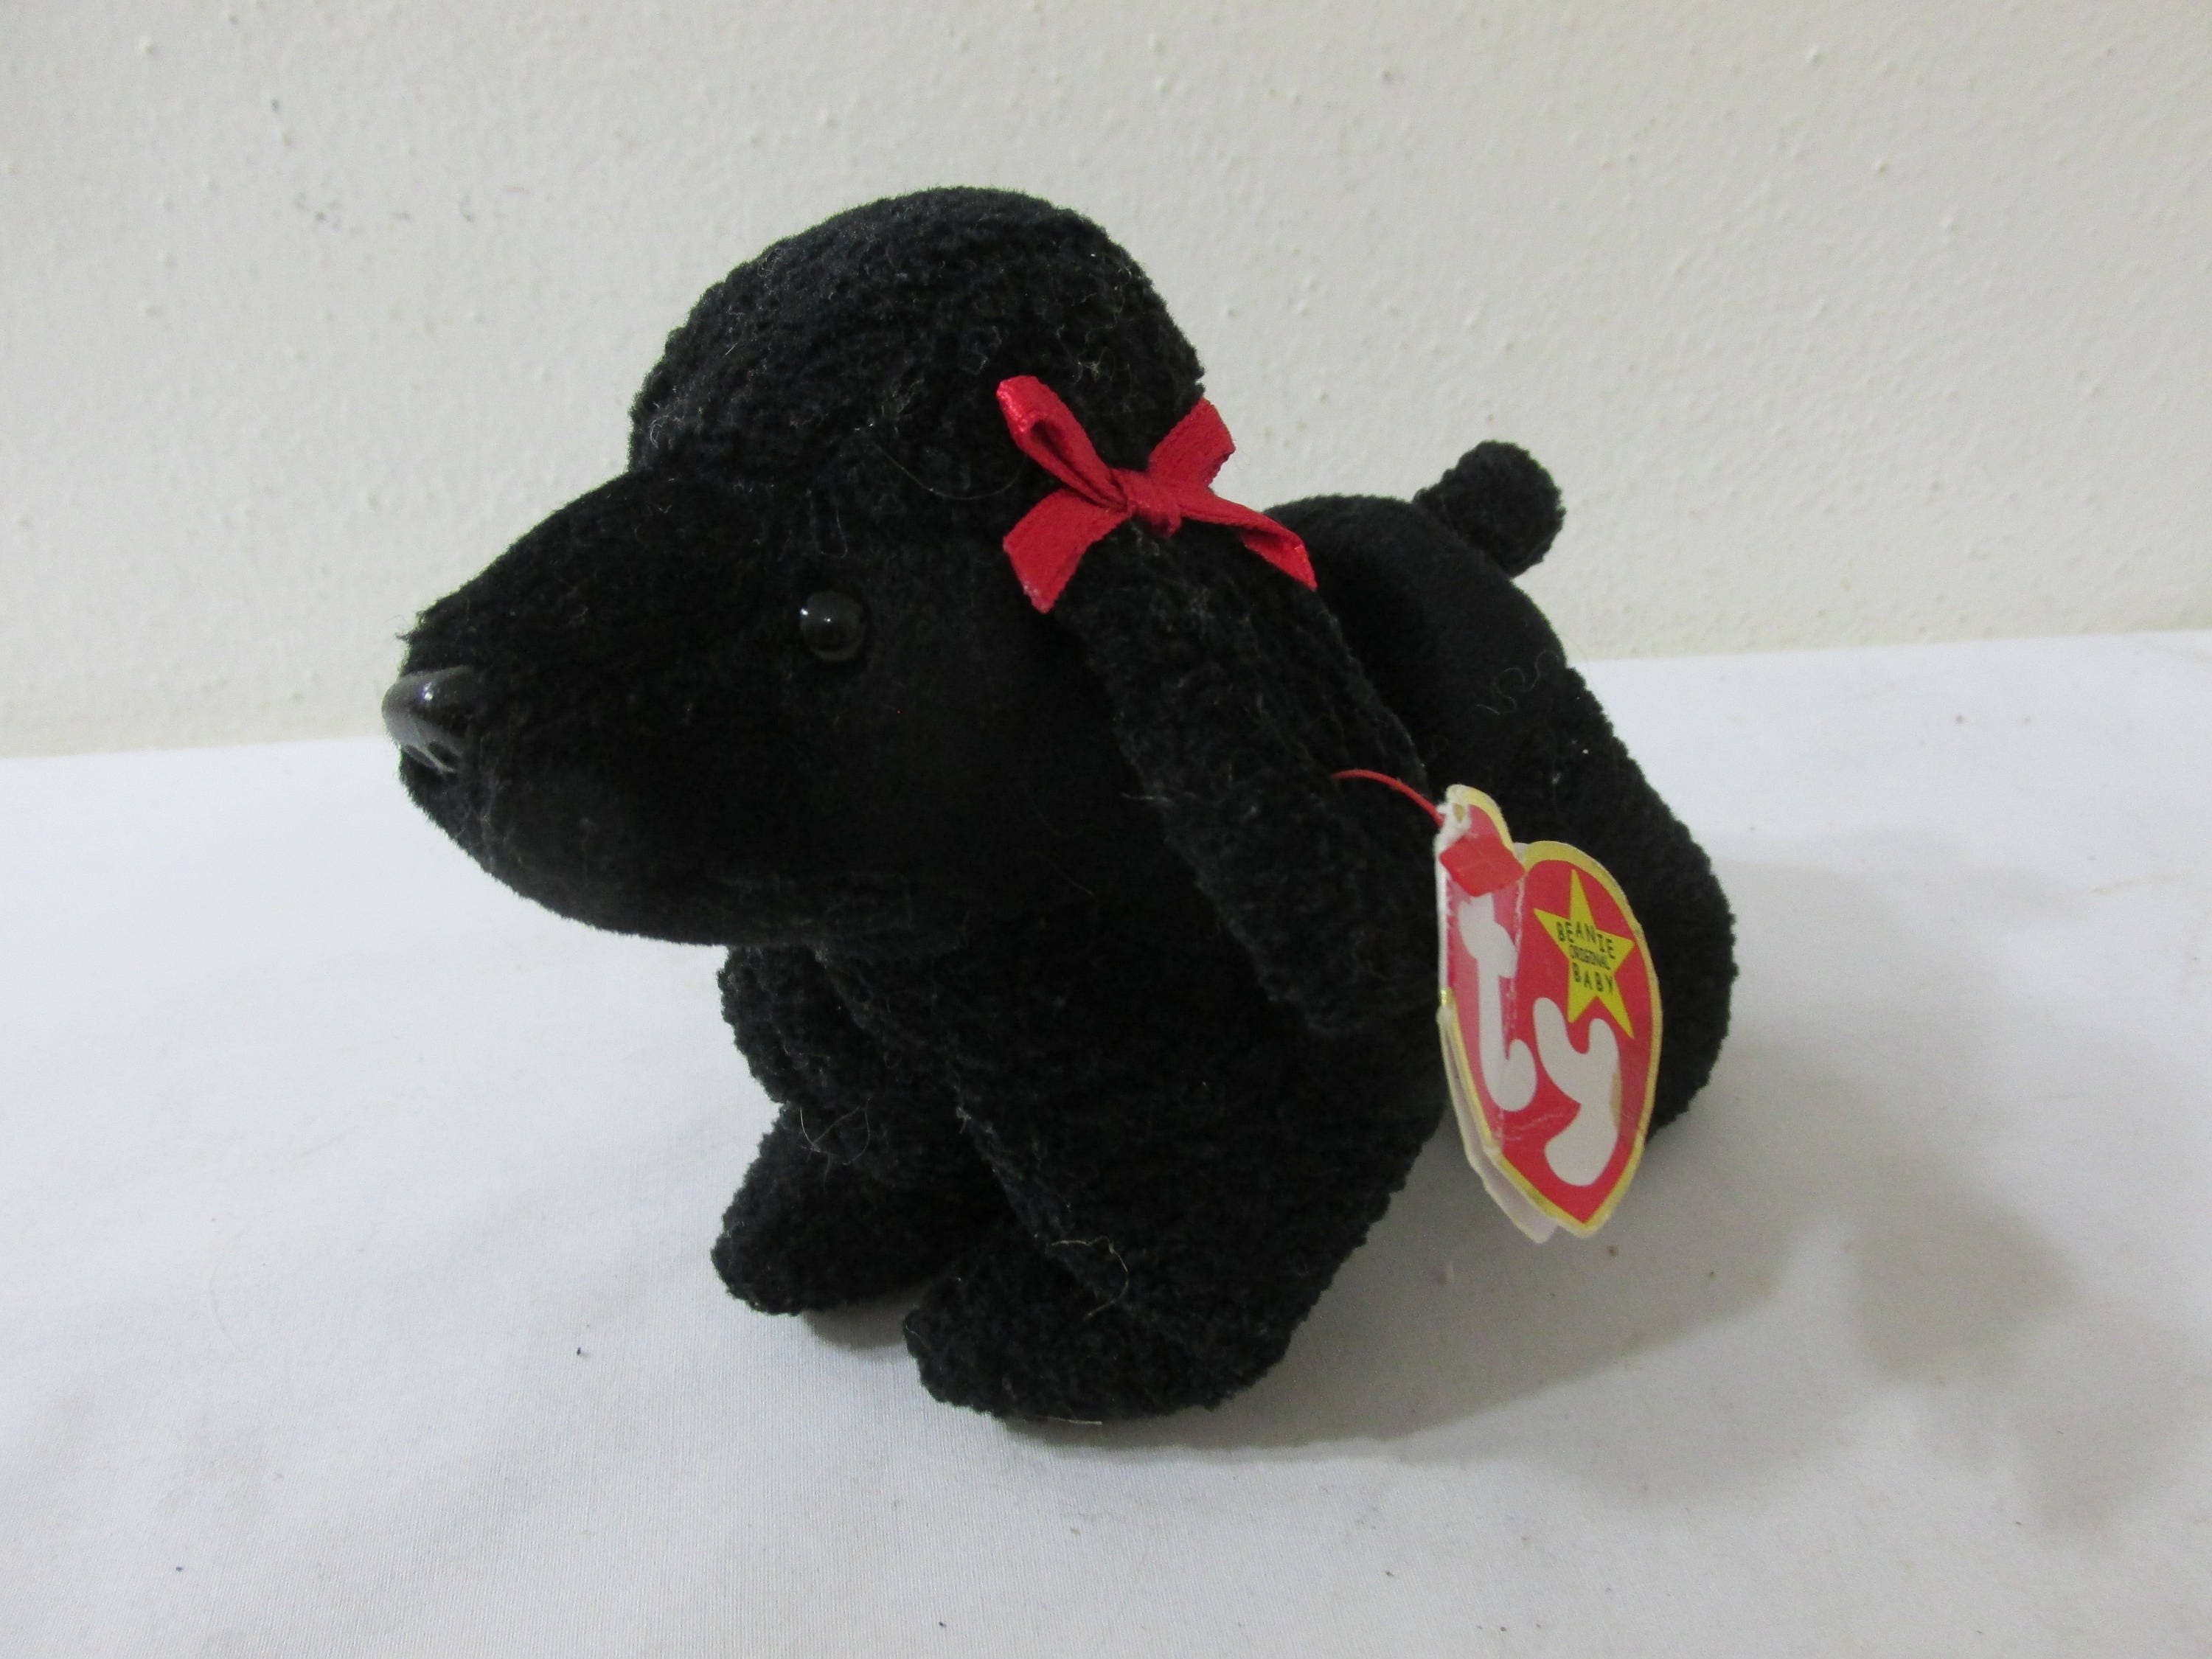 2d1d0ef168c Beanie Baby Black Poodle Gigi April 7 1997